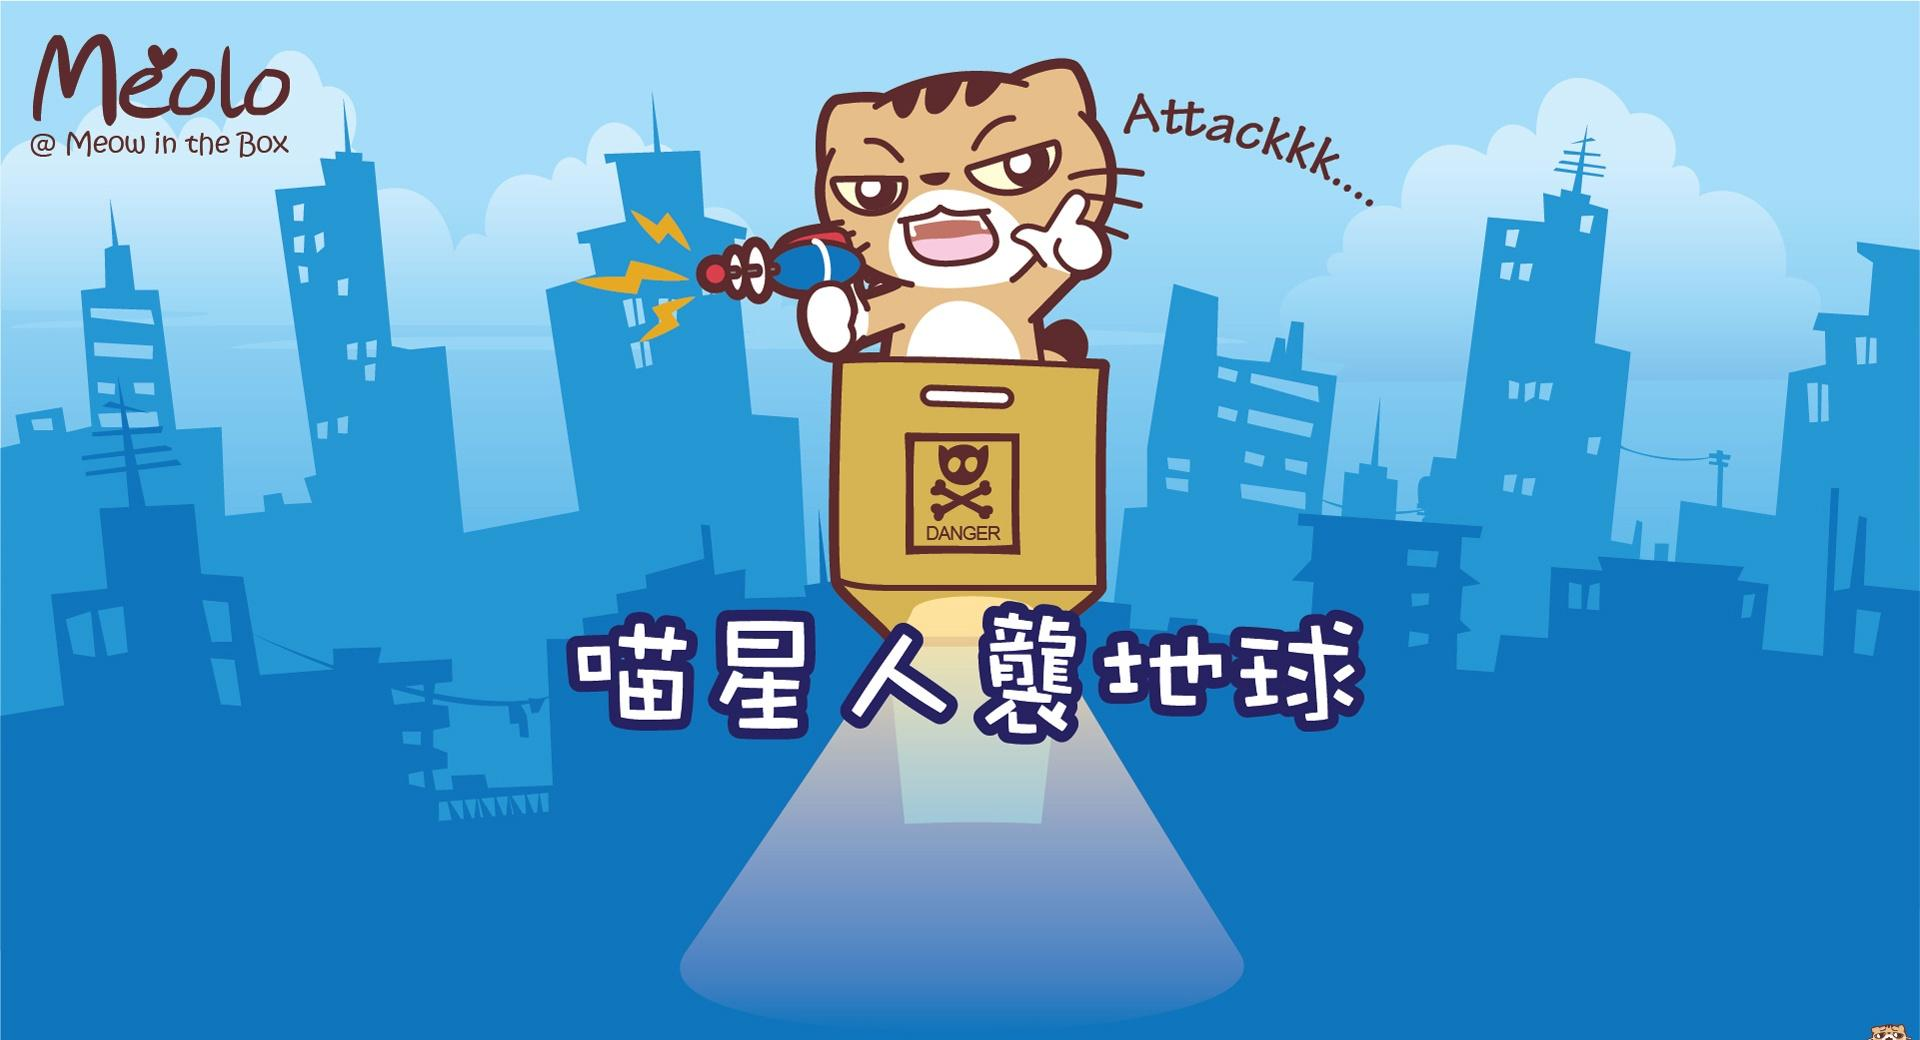 Meolo Earth Invasion - Meow in the Box wallpapers HD quality